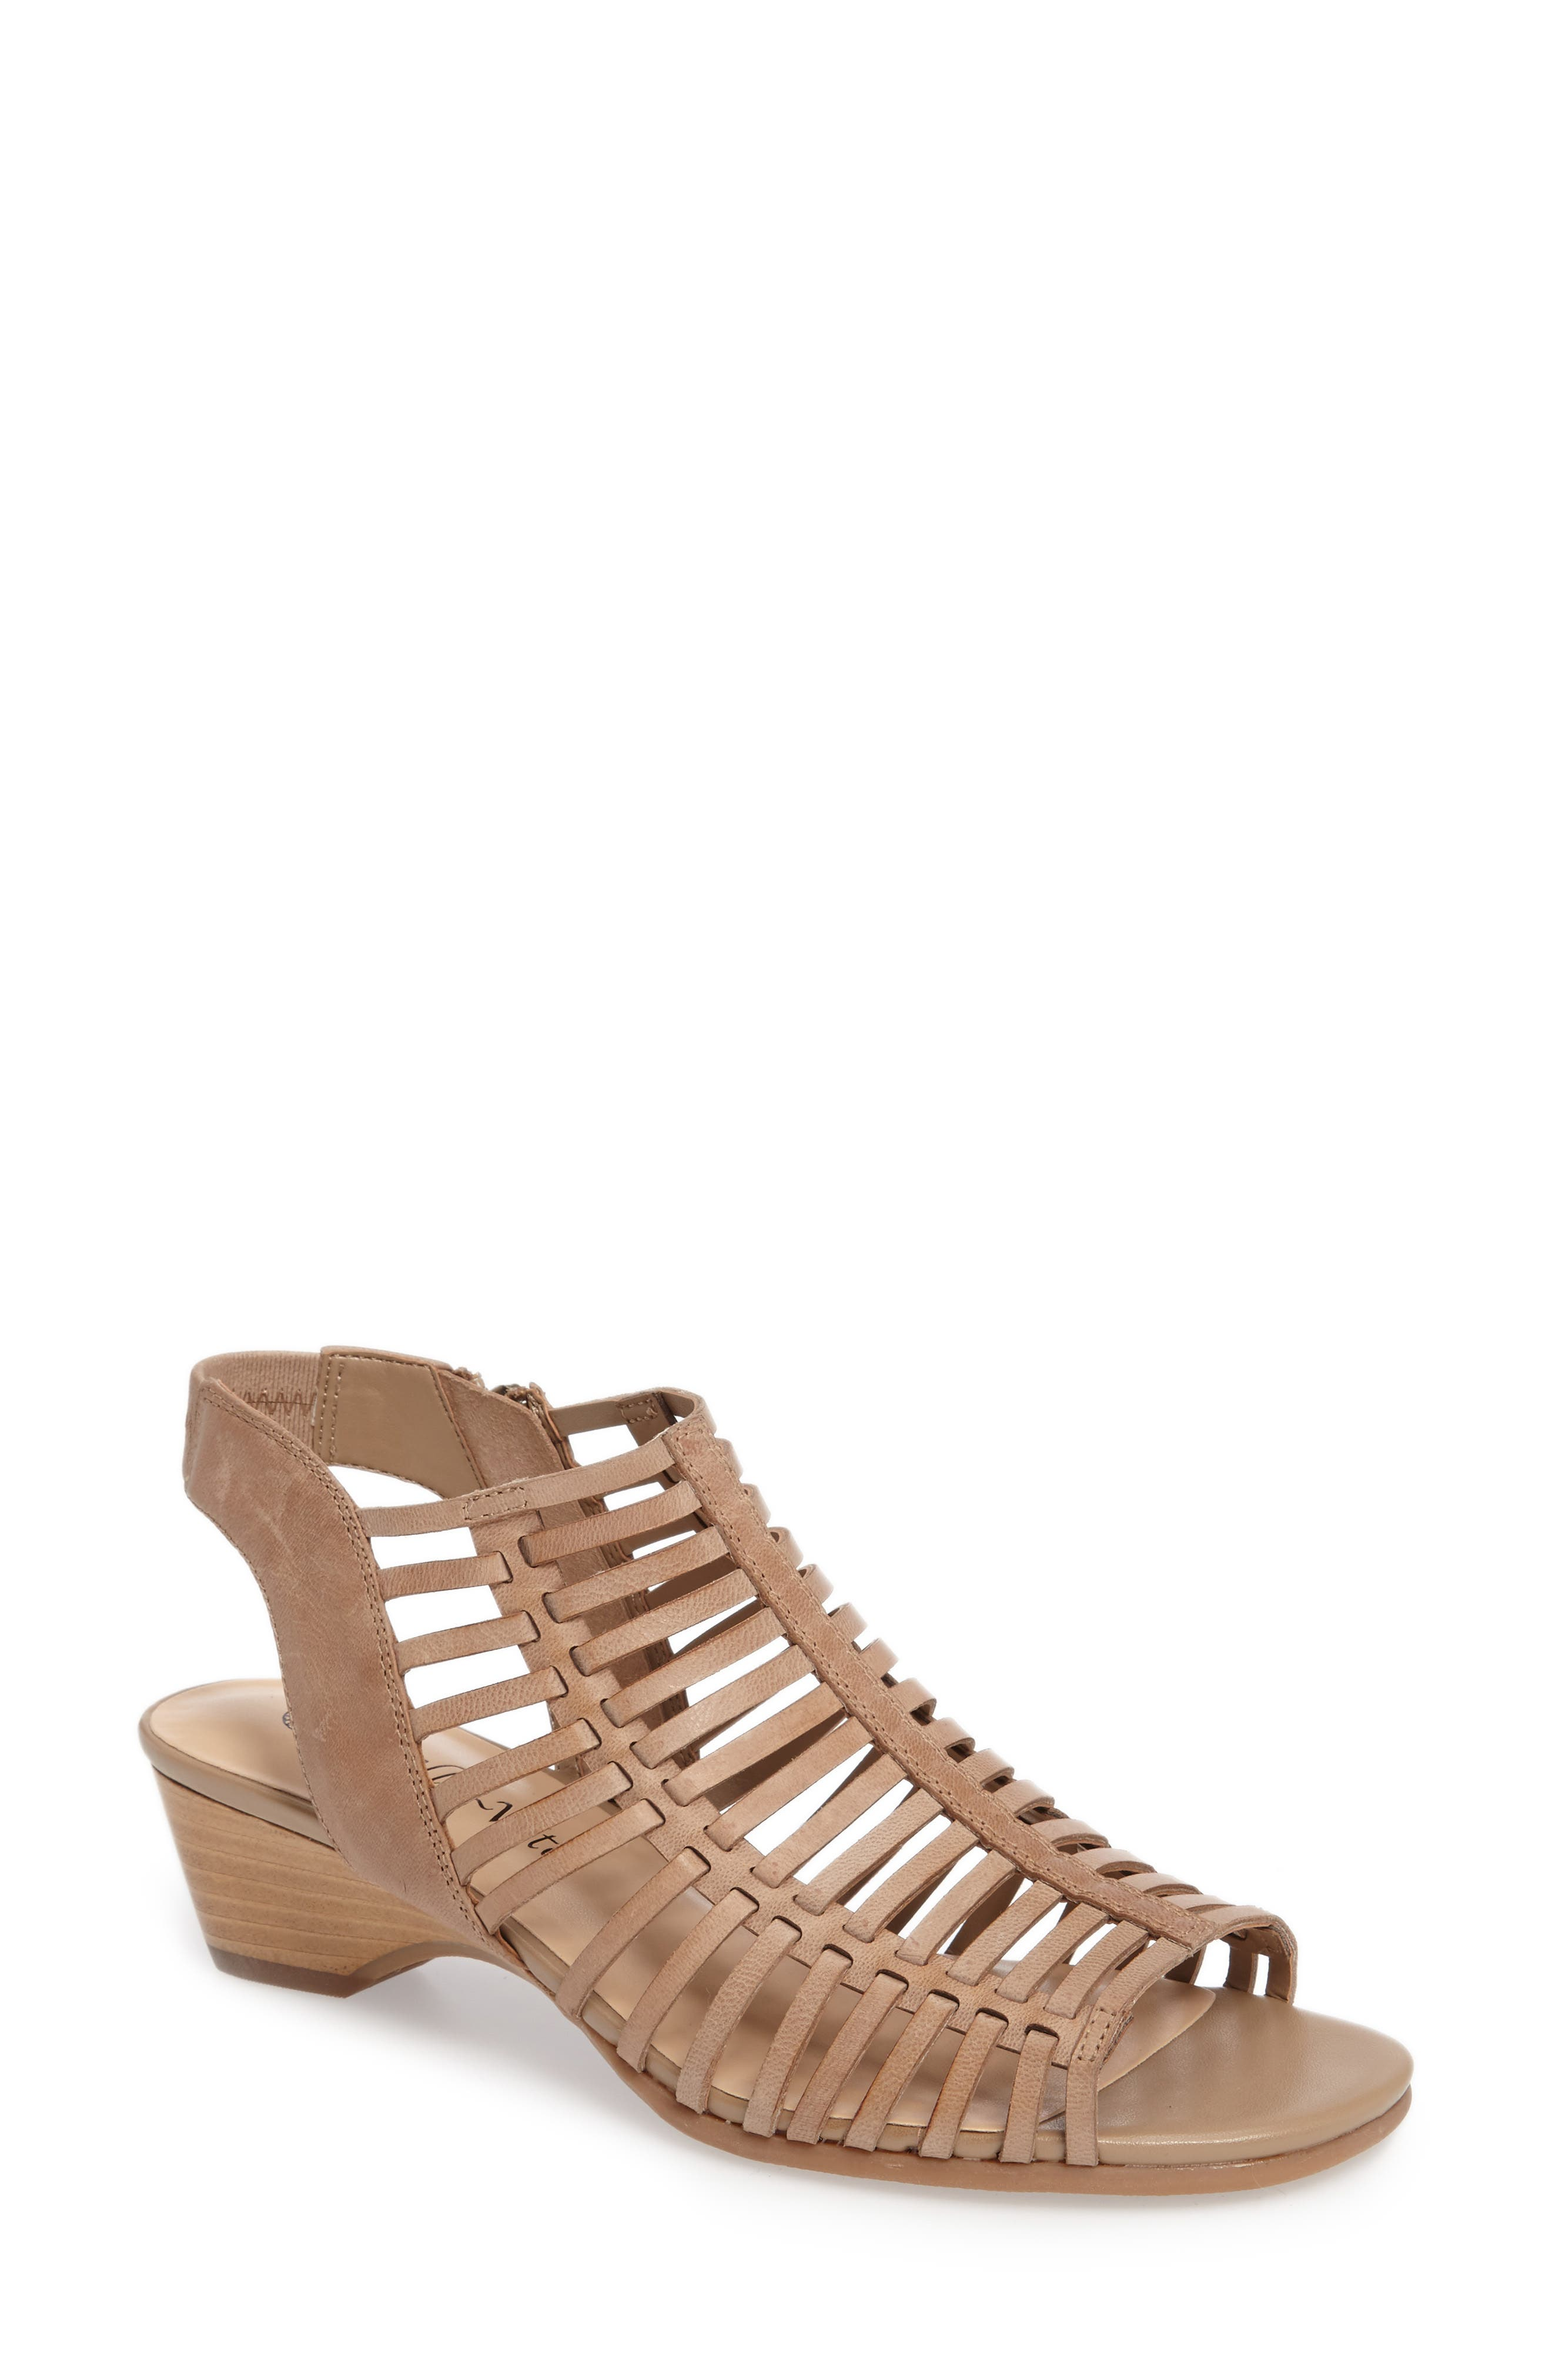 Pacey Cage Sandal,                         Main,                         color, Saddle Leather